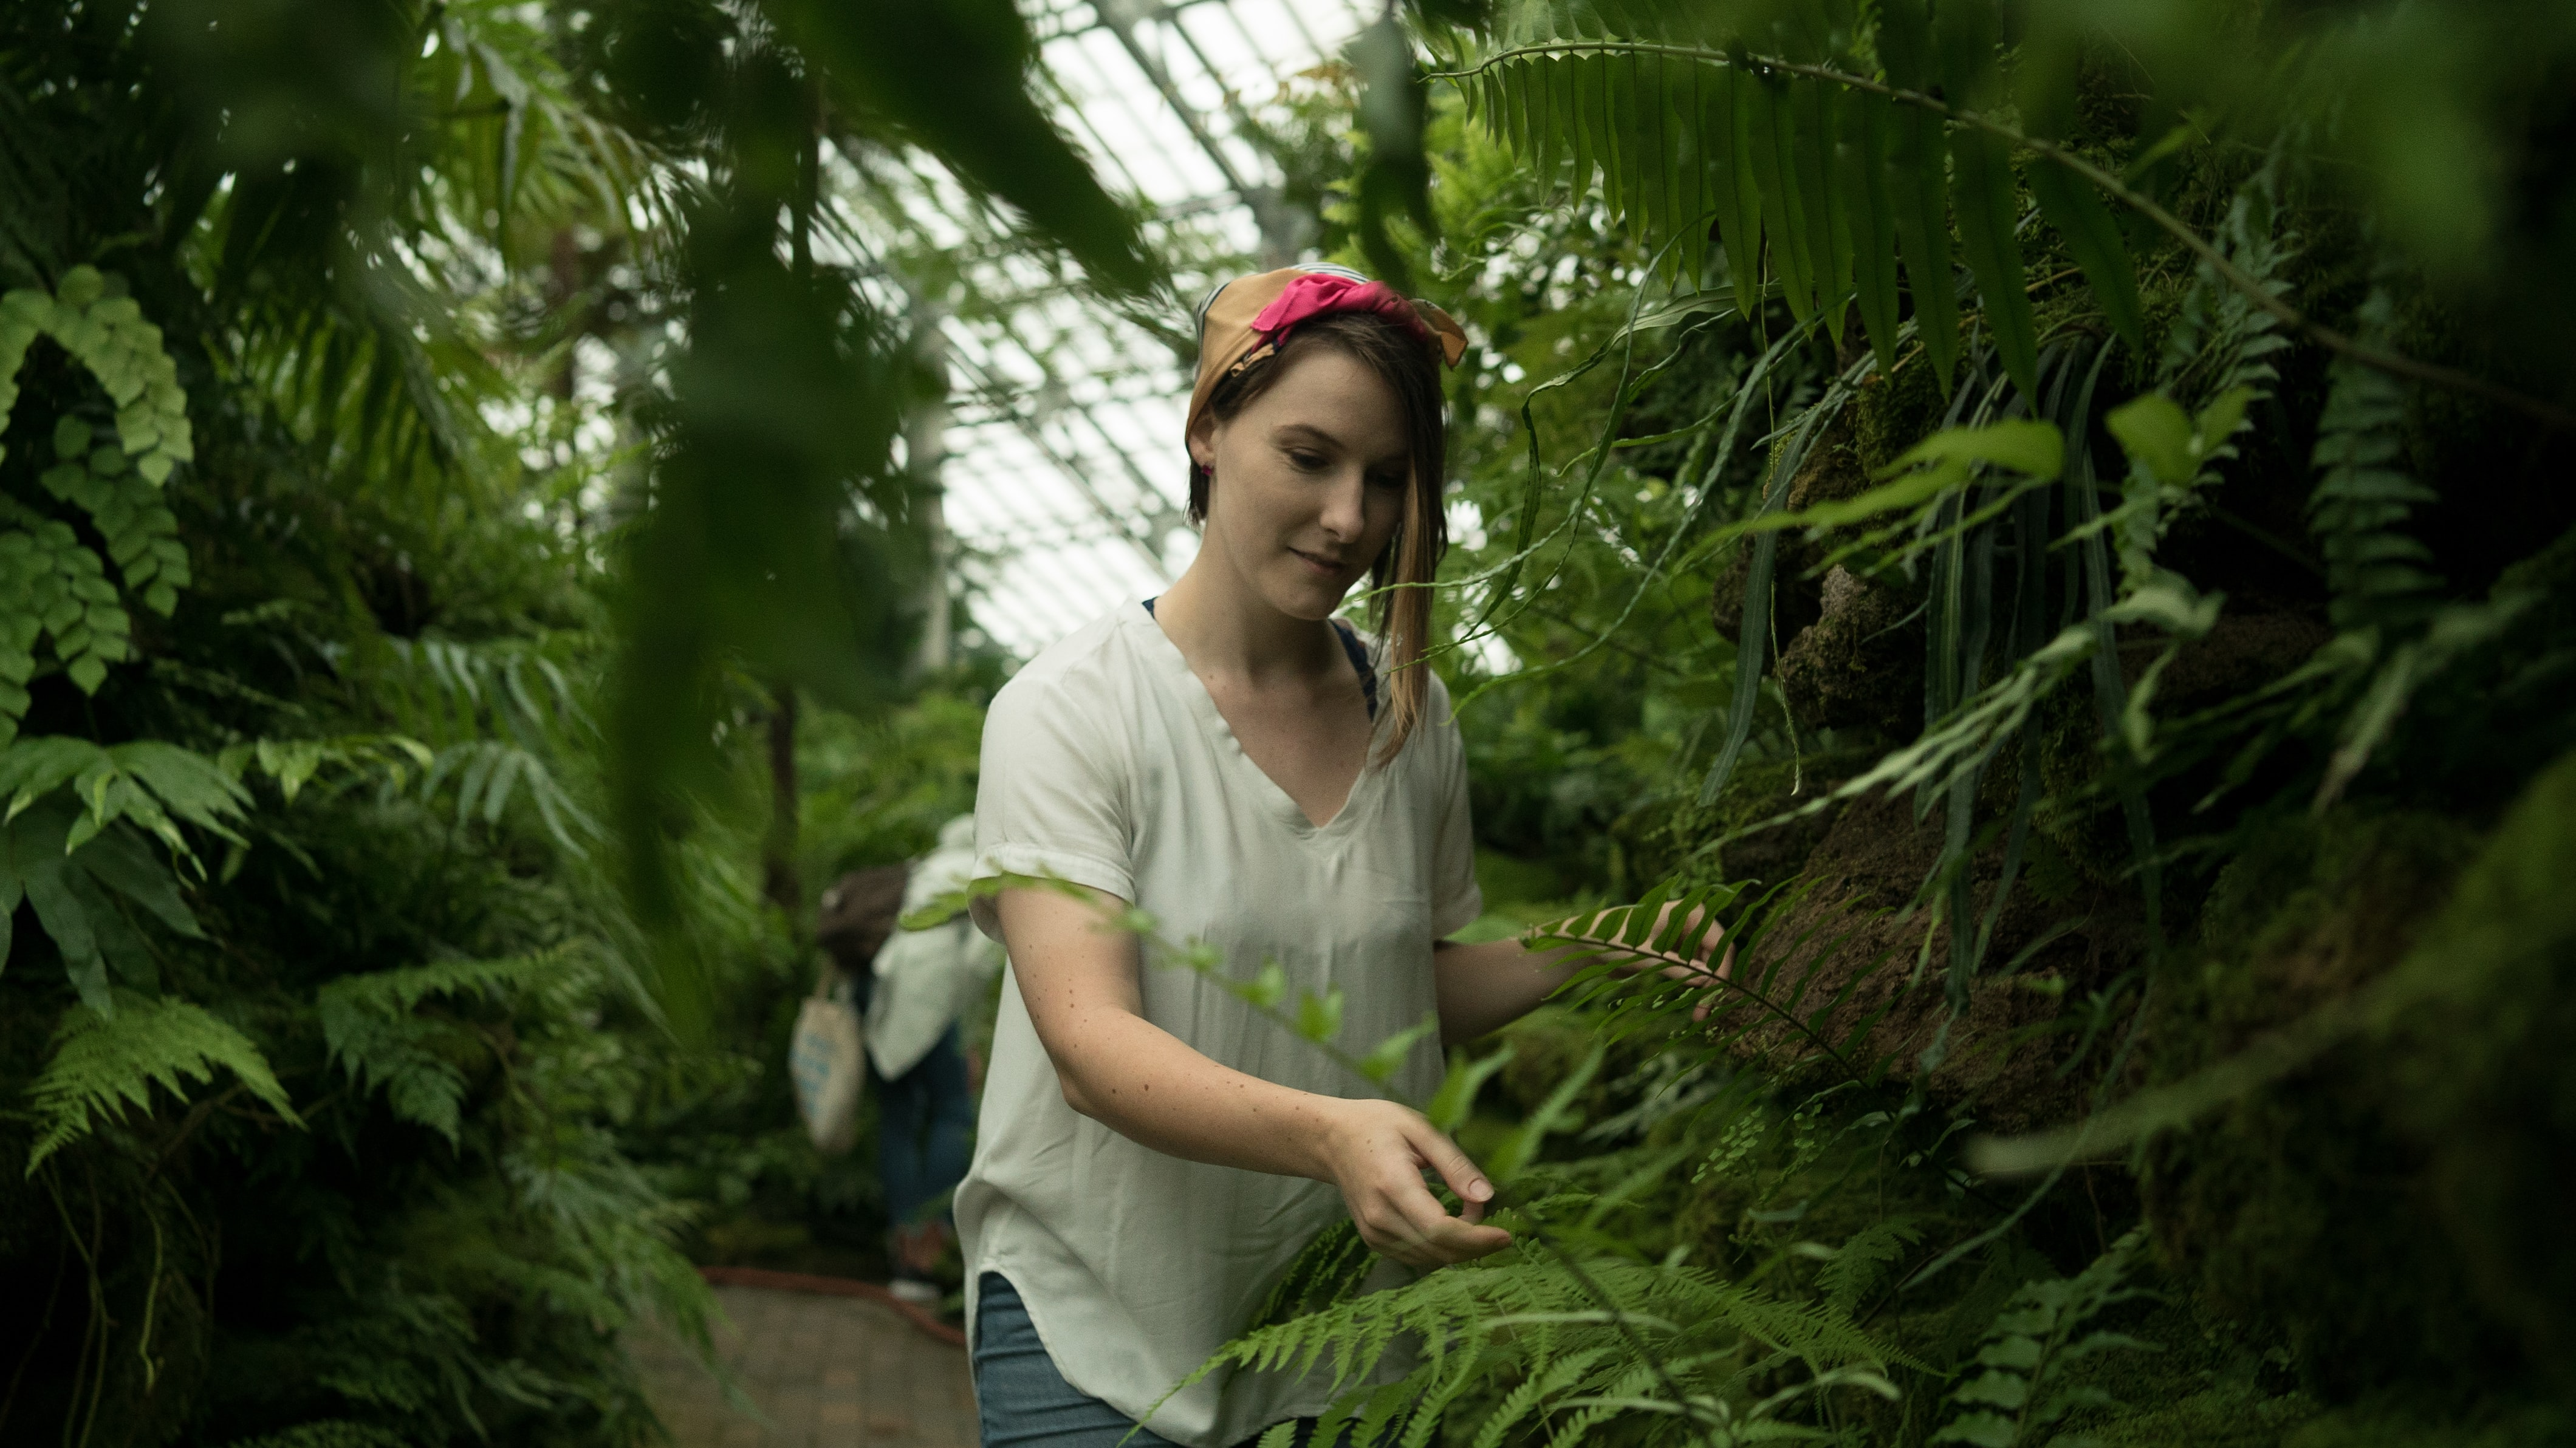 selective focus photography of woman standing beside Boston fern plant